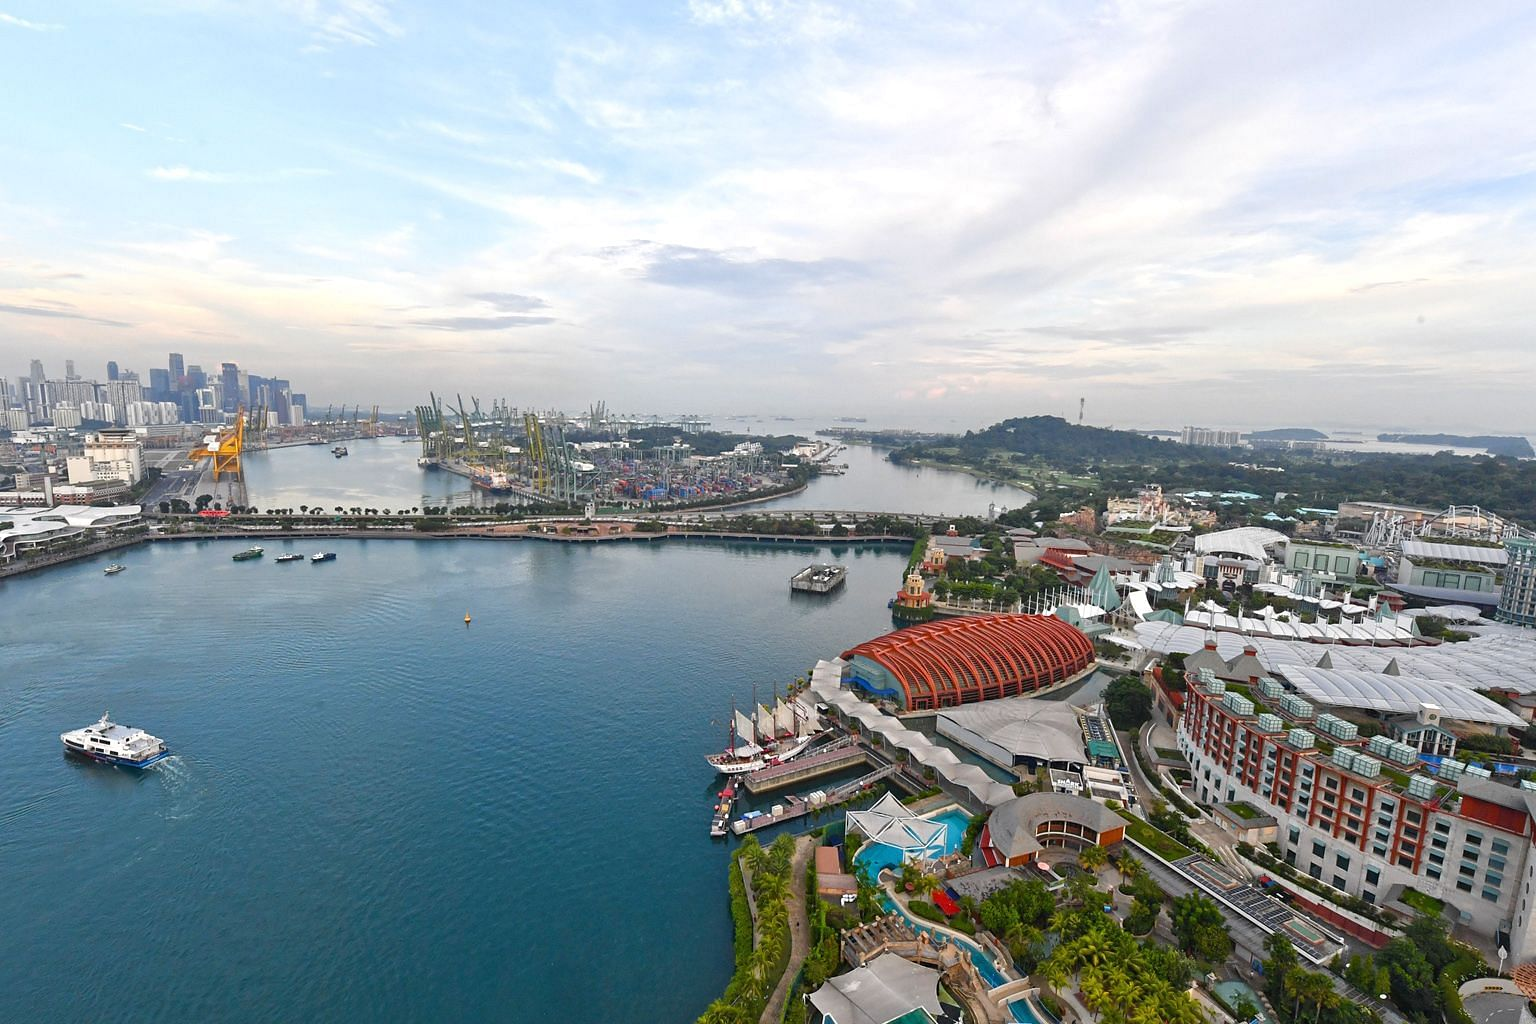 Sentosa (right) is set to get a boost with more attractions and investments, and government agencies are also drawing up development plans for the adjacent Pulau Brani (background). The whole area will be branded as the Southern Gateway of Asia.